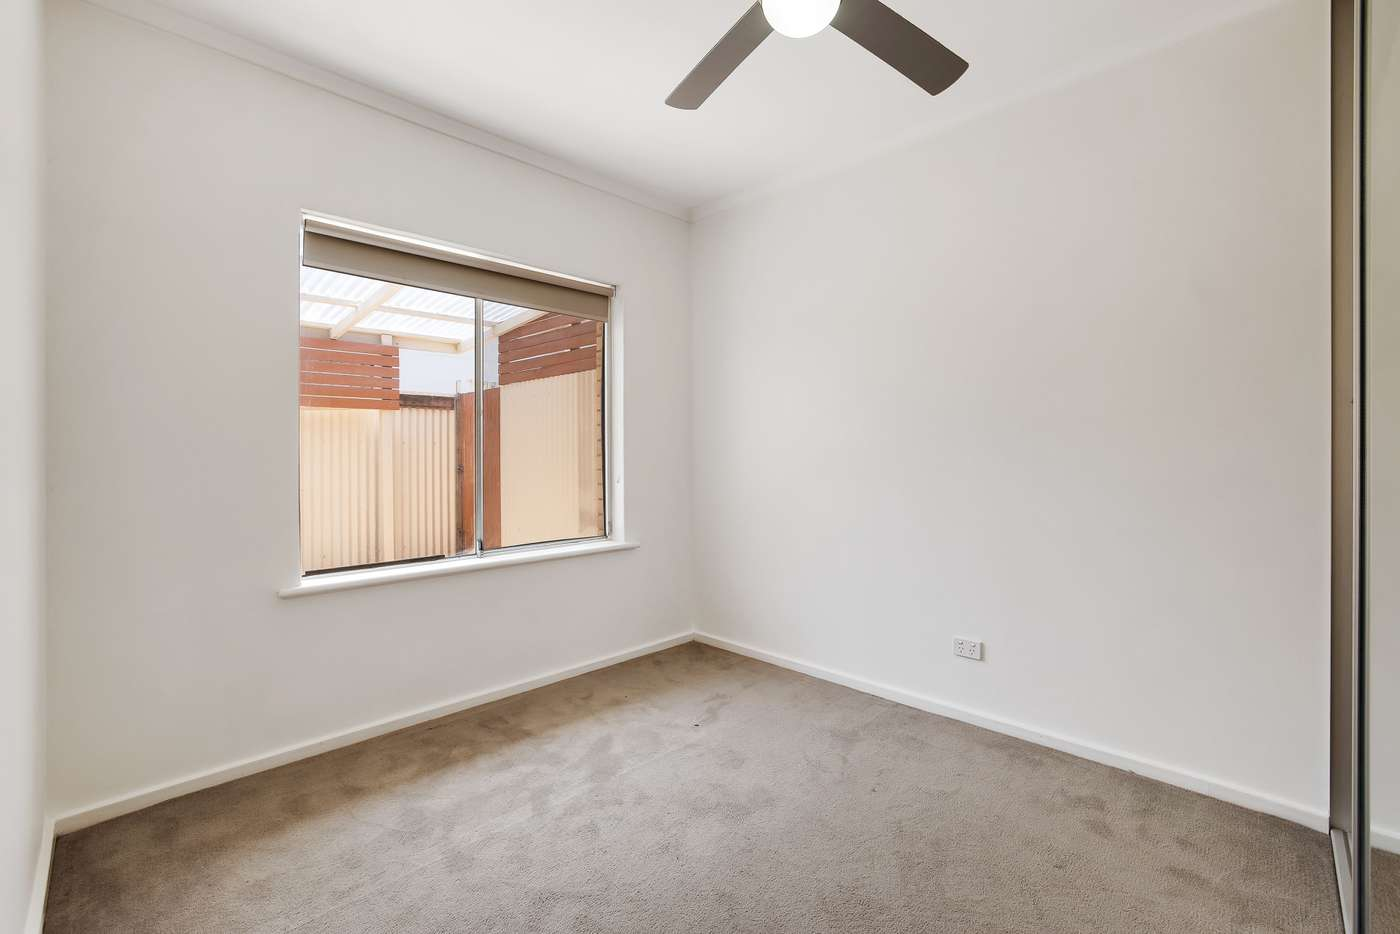 Fifth view of Homely unit listing, 2/70 Blight Street, Ridleyton SA 5008